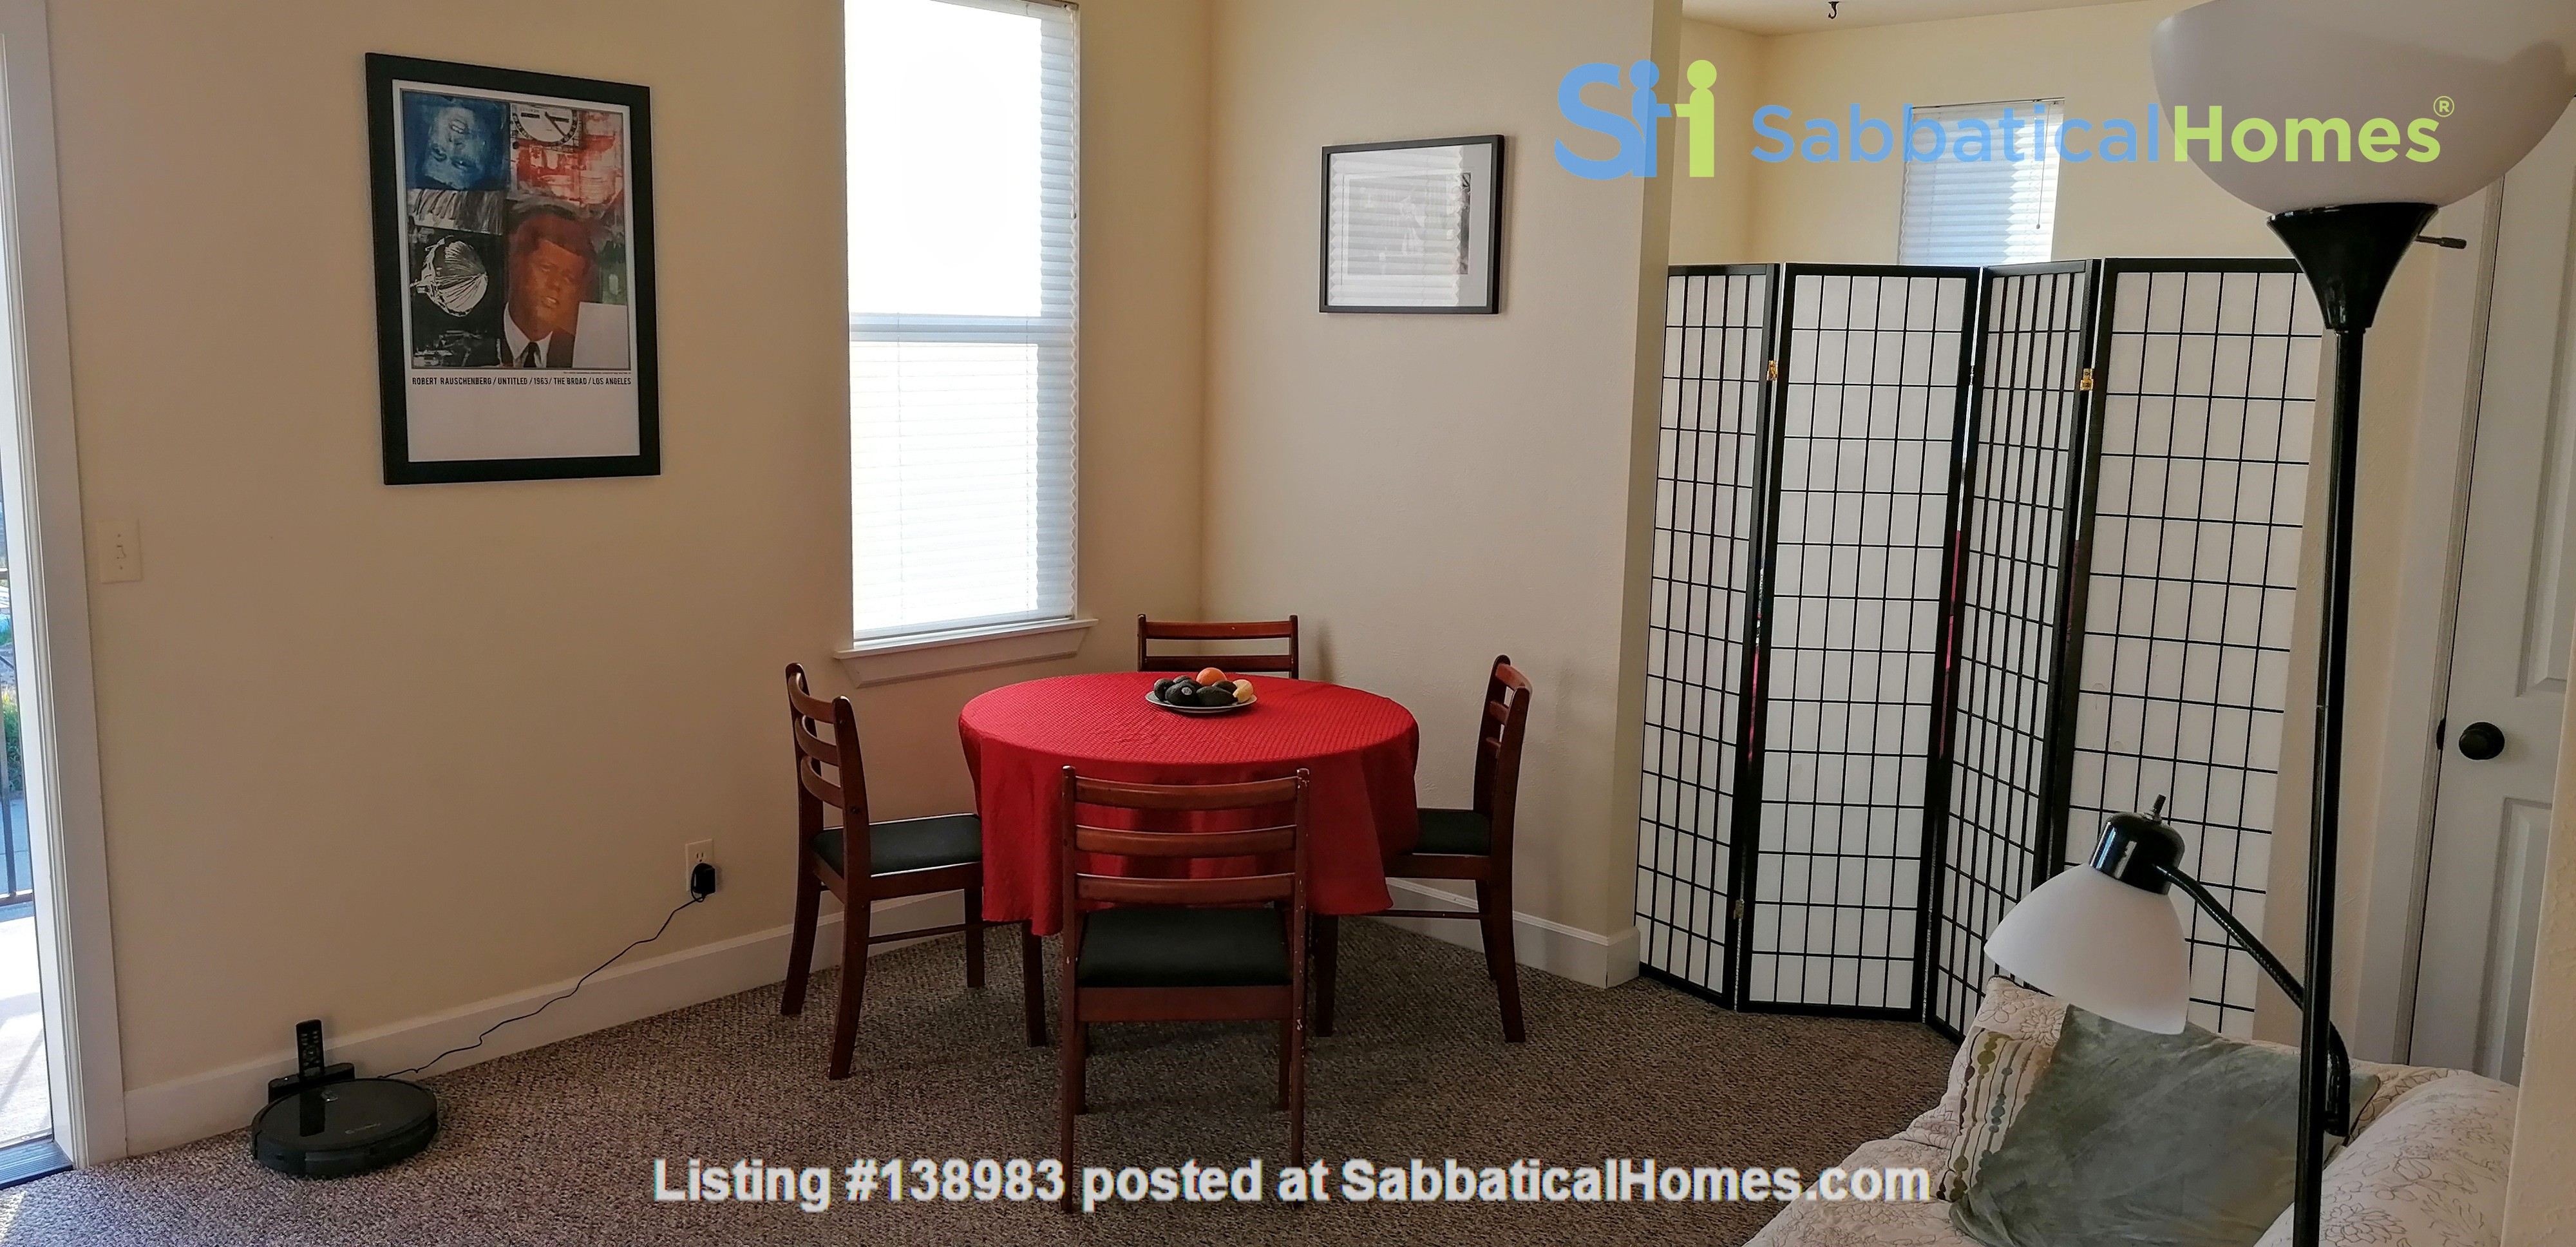 Spacious one bedroom/studio  apartment in Missoula, MT Home Rental in Missoula, Montana, United States 5